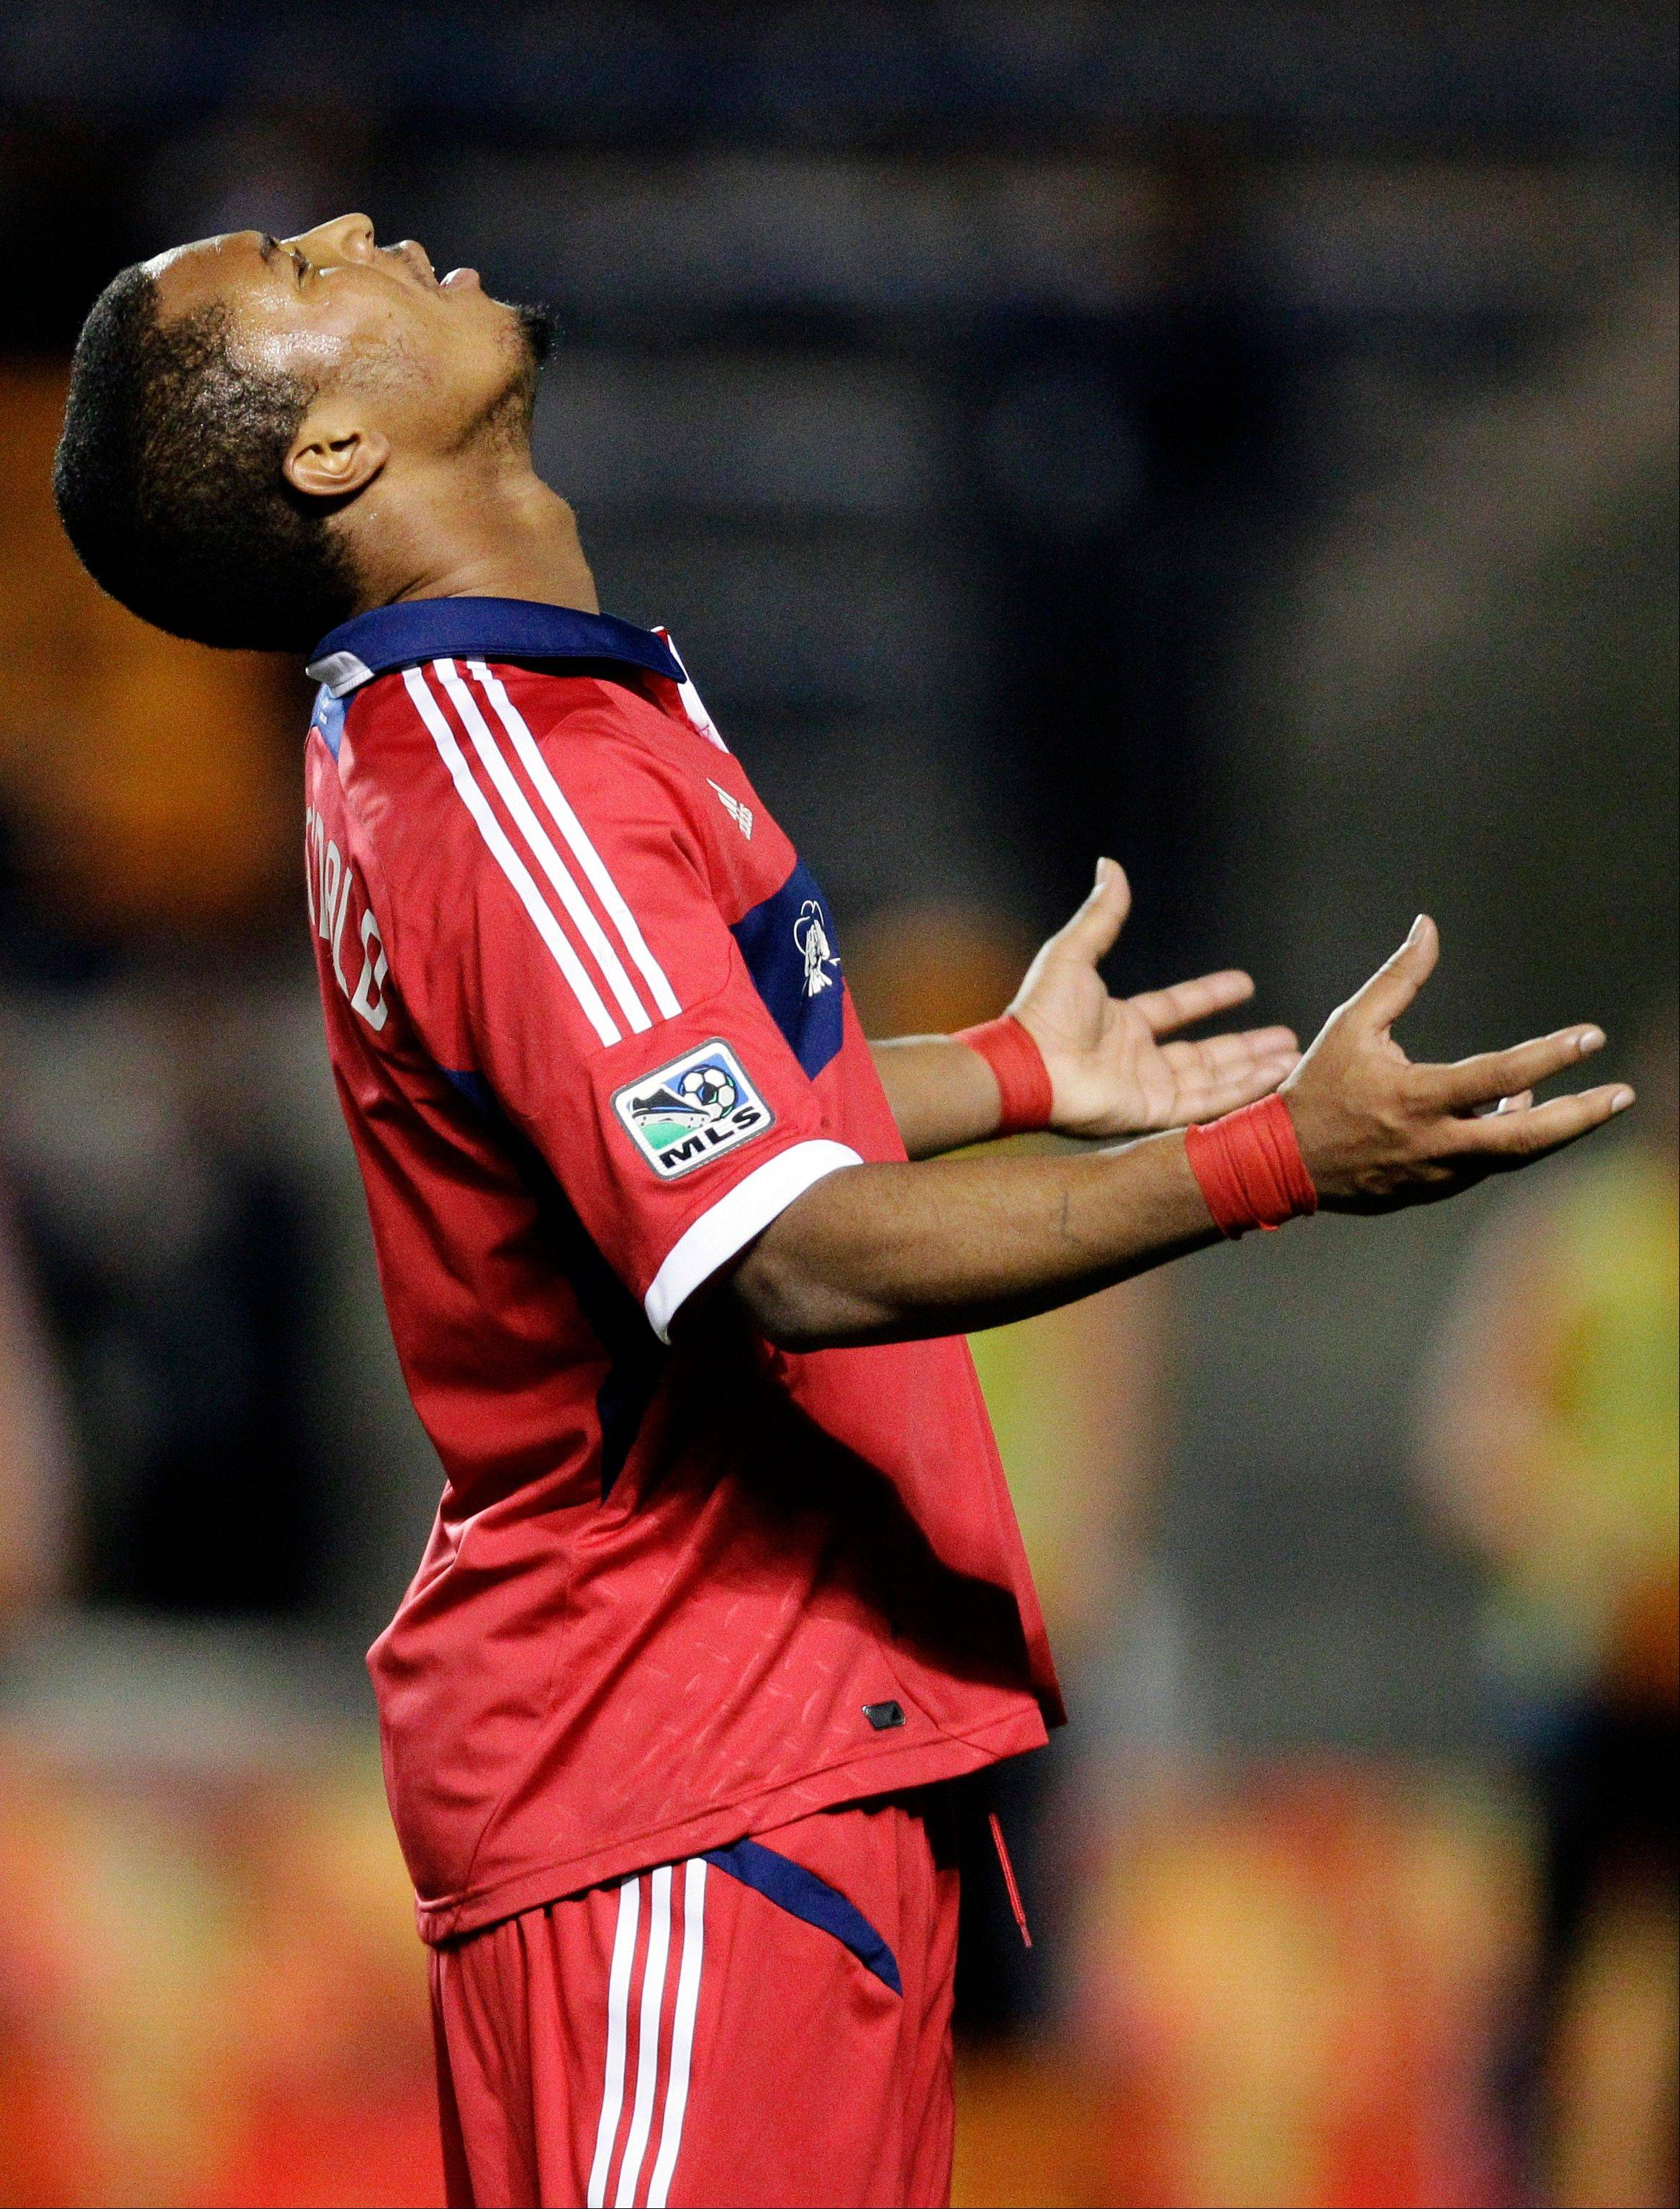 Chicago Fire forward Sherjill MacDonald (7) reacts after missing a pass against the Houston Dynamo during the second half of their MLS soccer playoff match, Wednesday, Oct. 31, 2012, in Bridgeview, Ill. Houston won 2-1. (AP Photo/Nam Y. Huh)